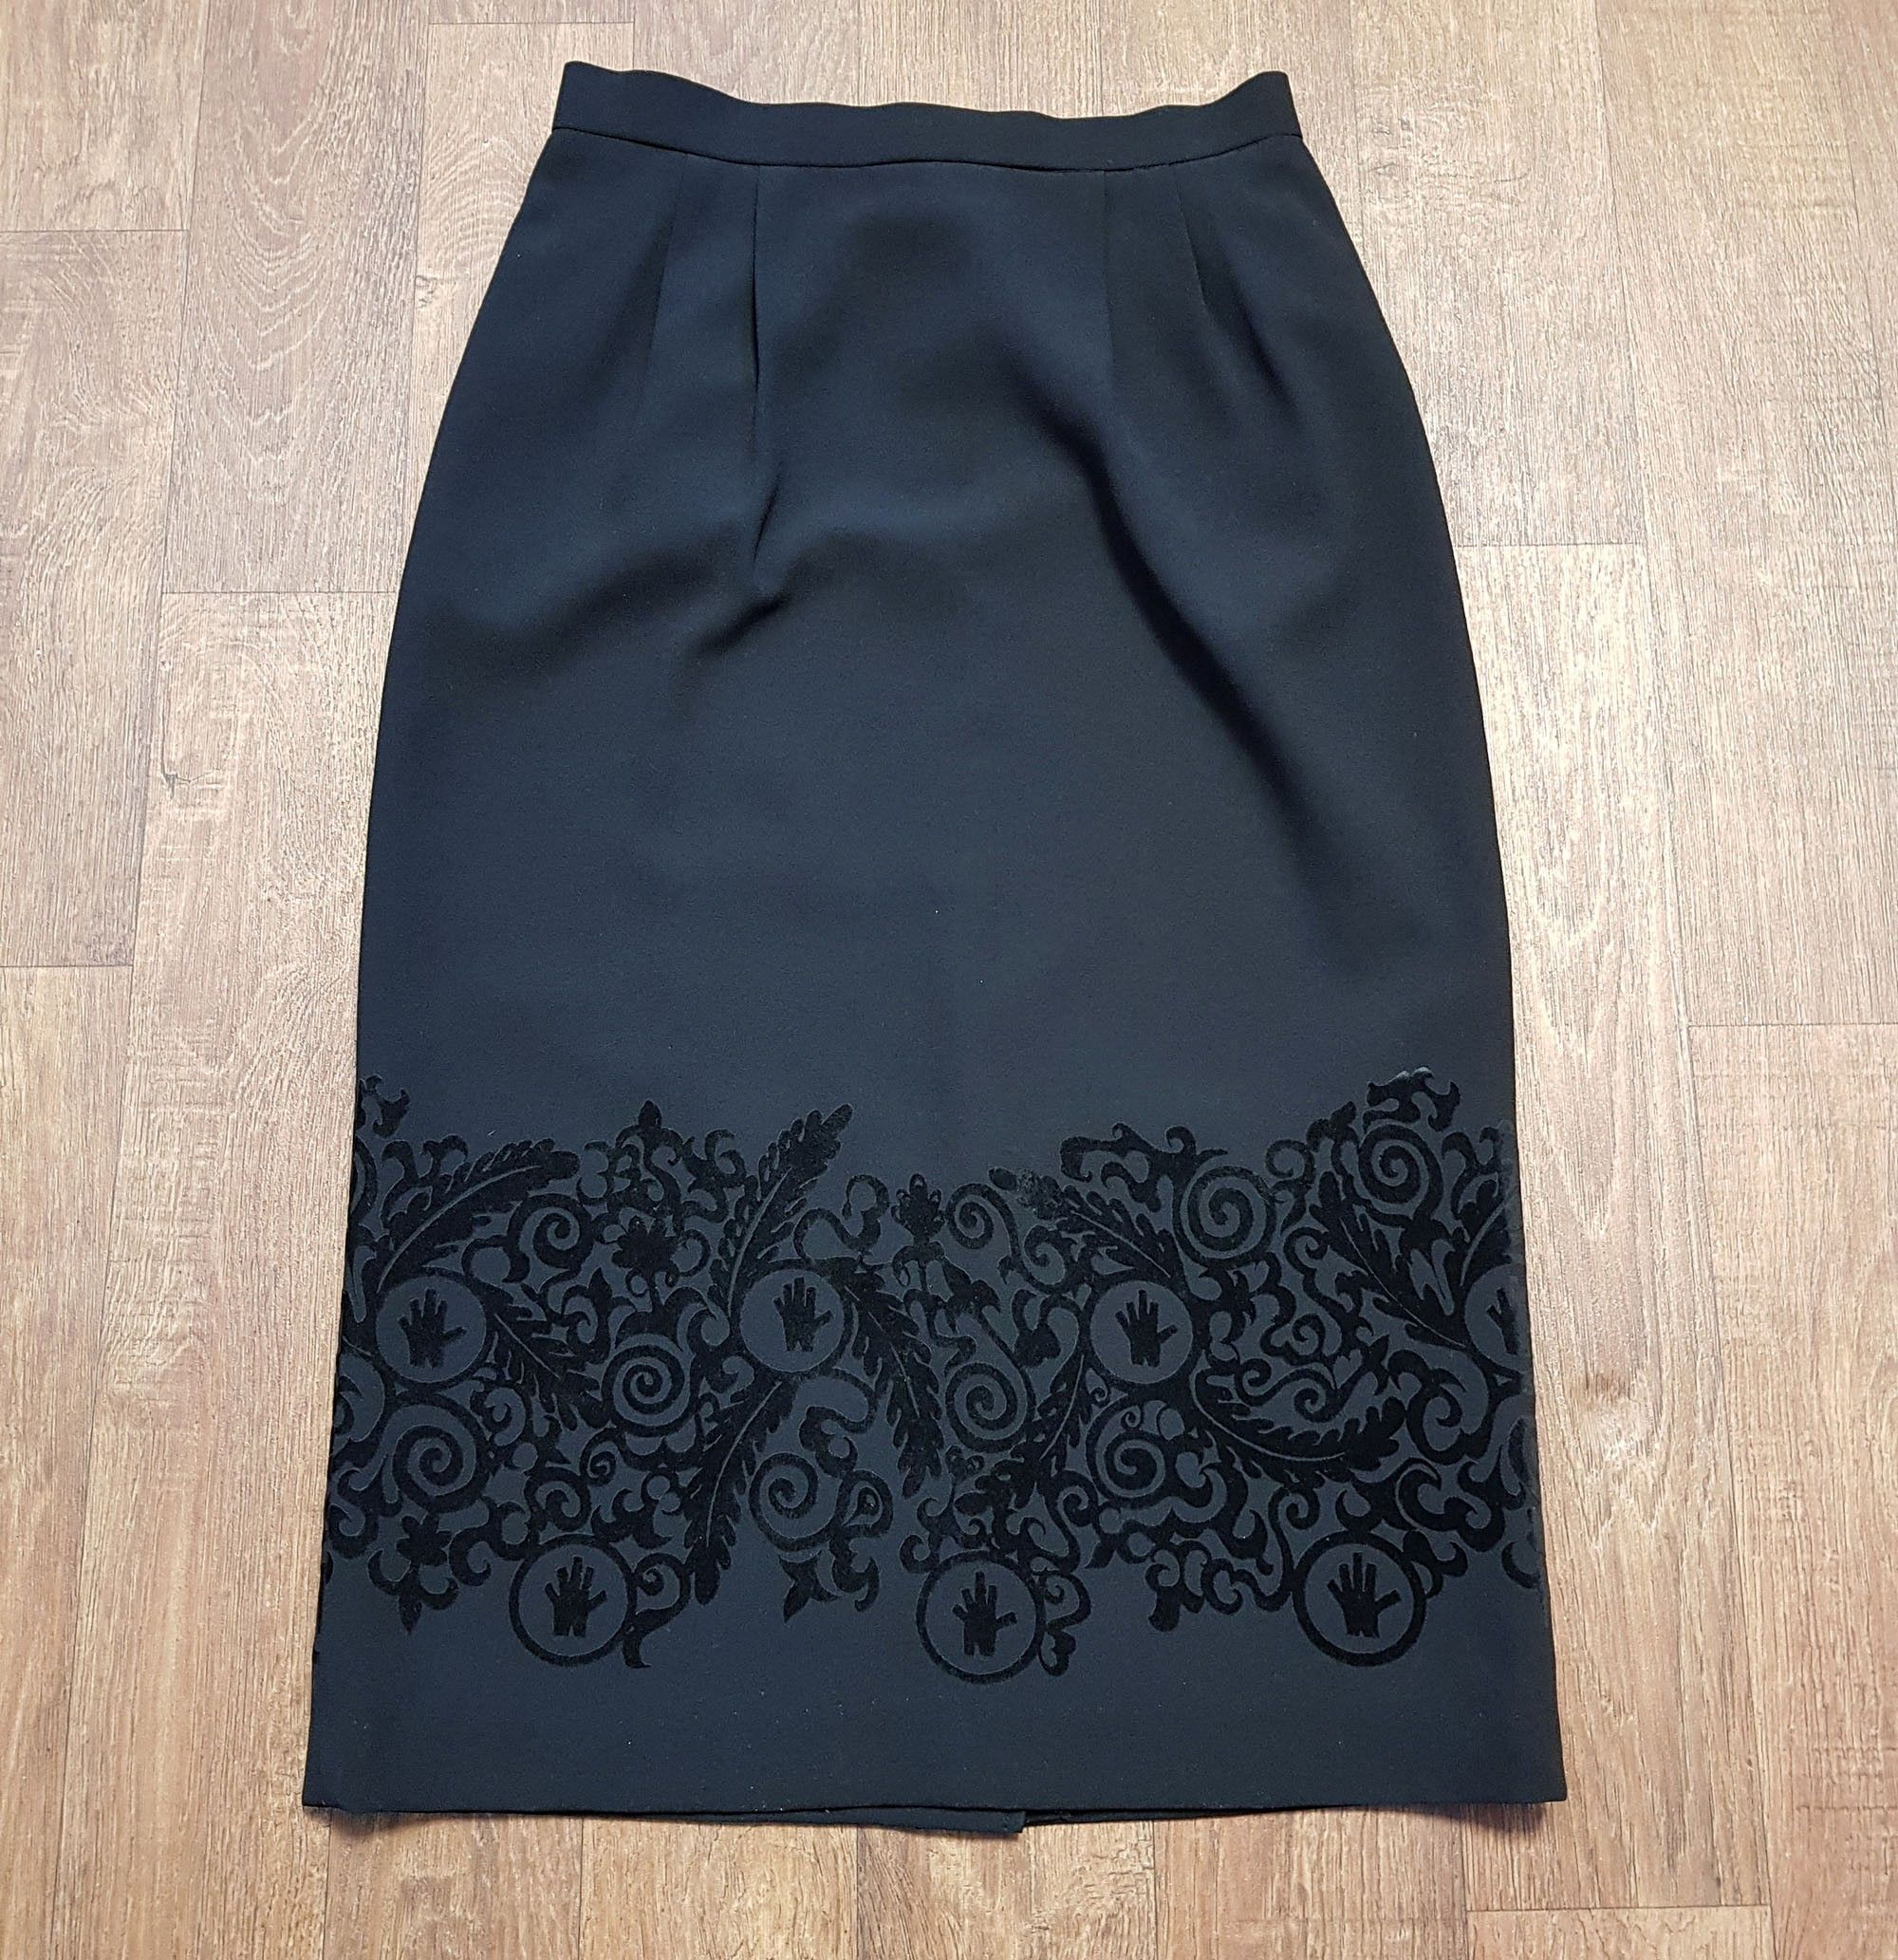 1970s Vintage Black Flocked Pencil Skirt UK Size 10